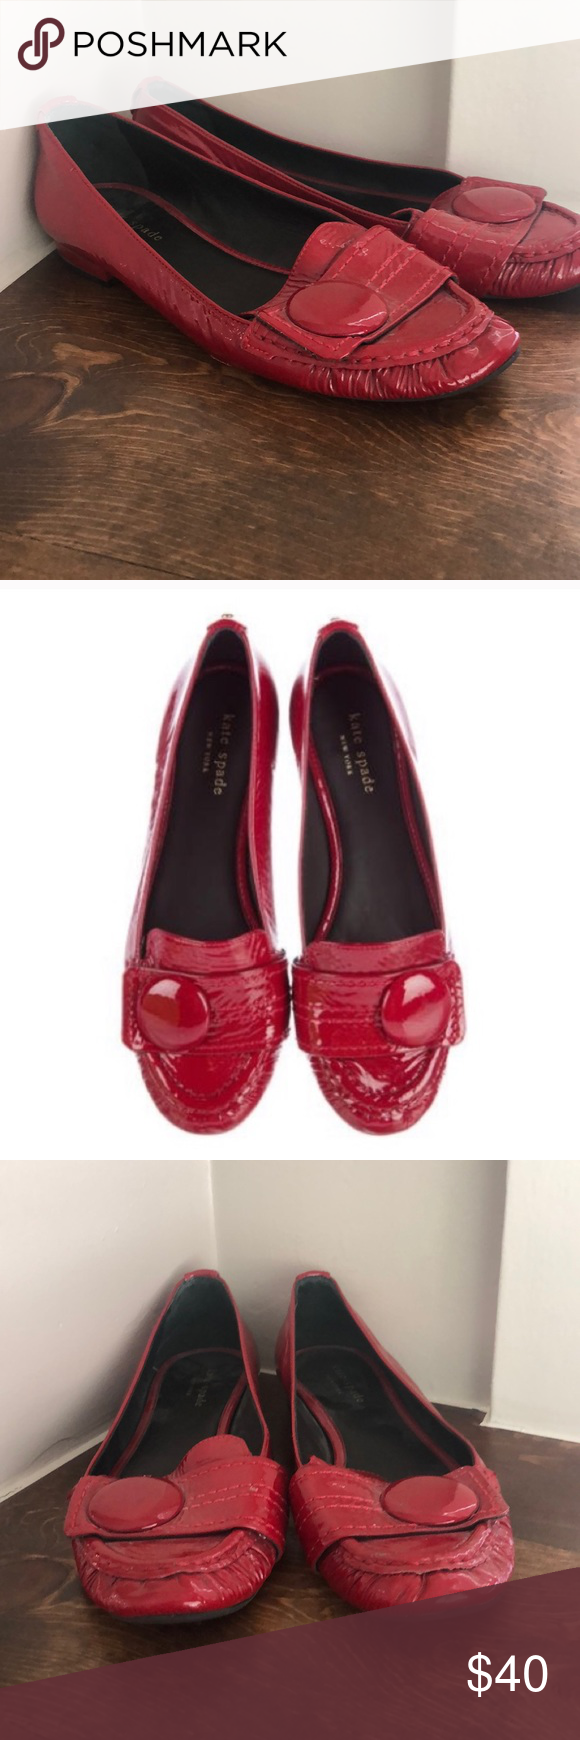 b51ee6be3 Kate Spade Poppy Red Shelly crinkle flats size 8.5 Kate Spade Poppy Red  Shelly crinkle patent